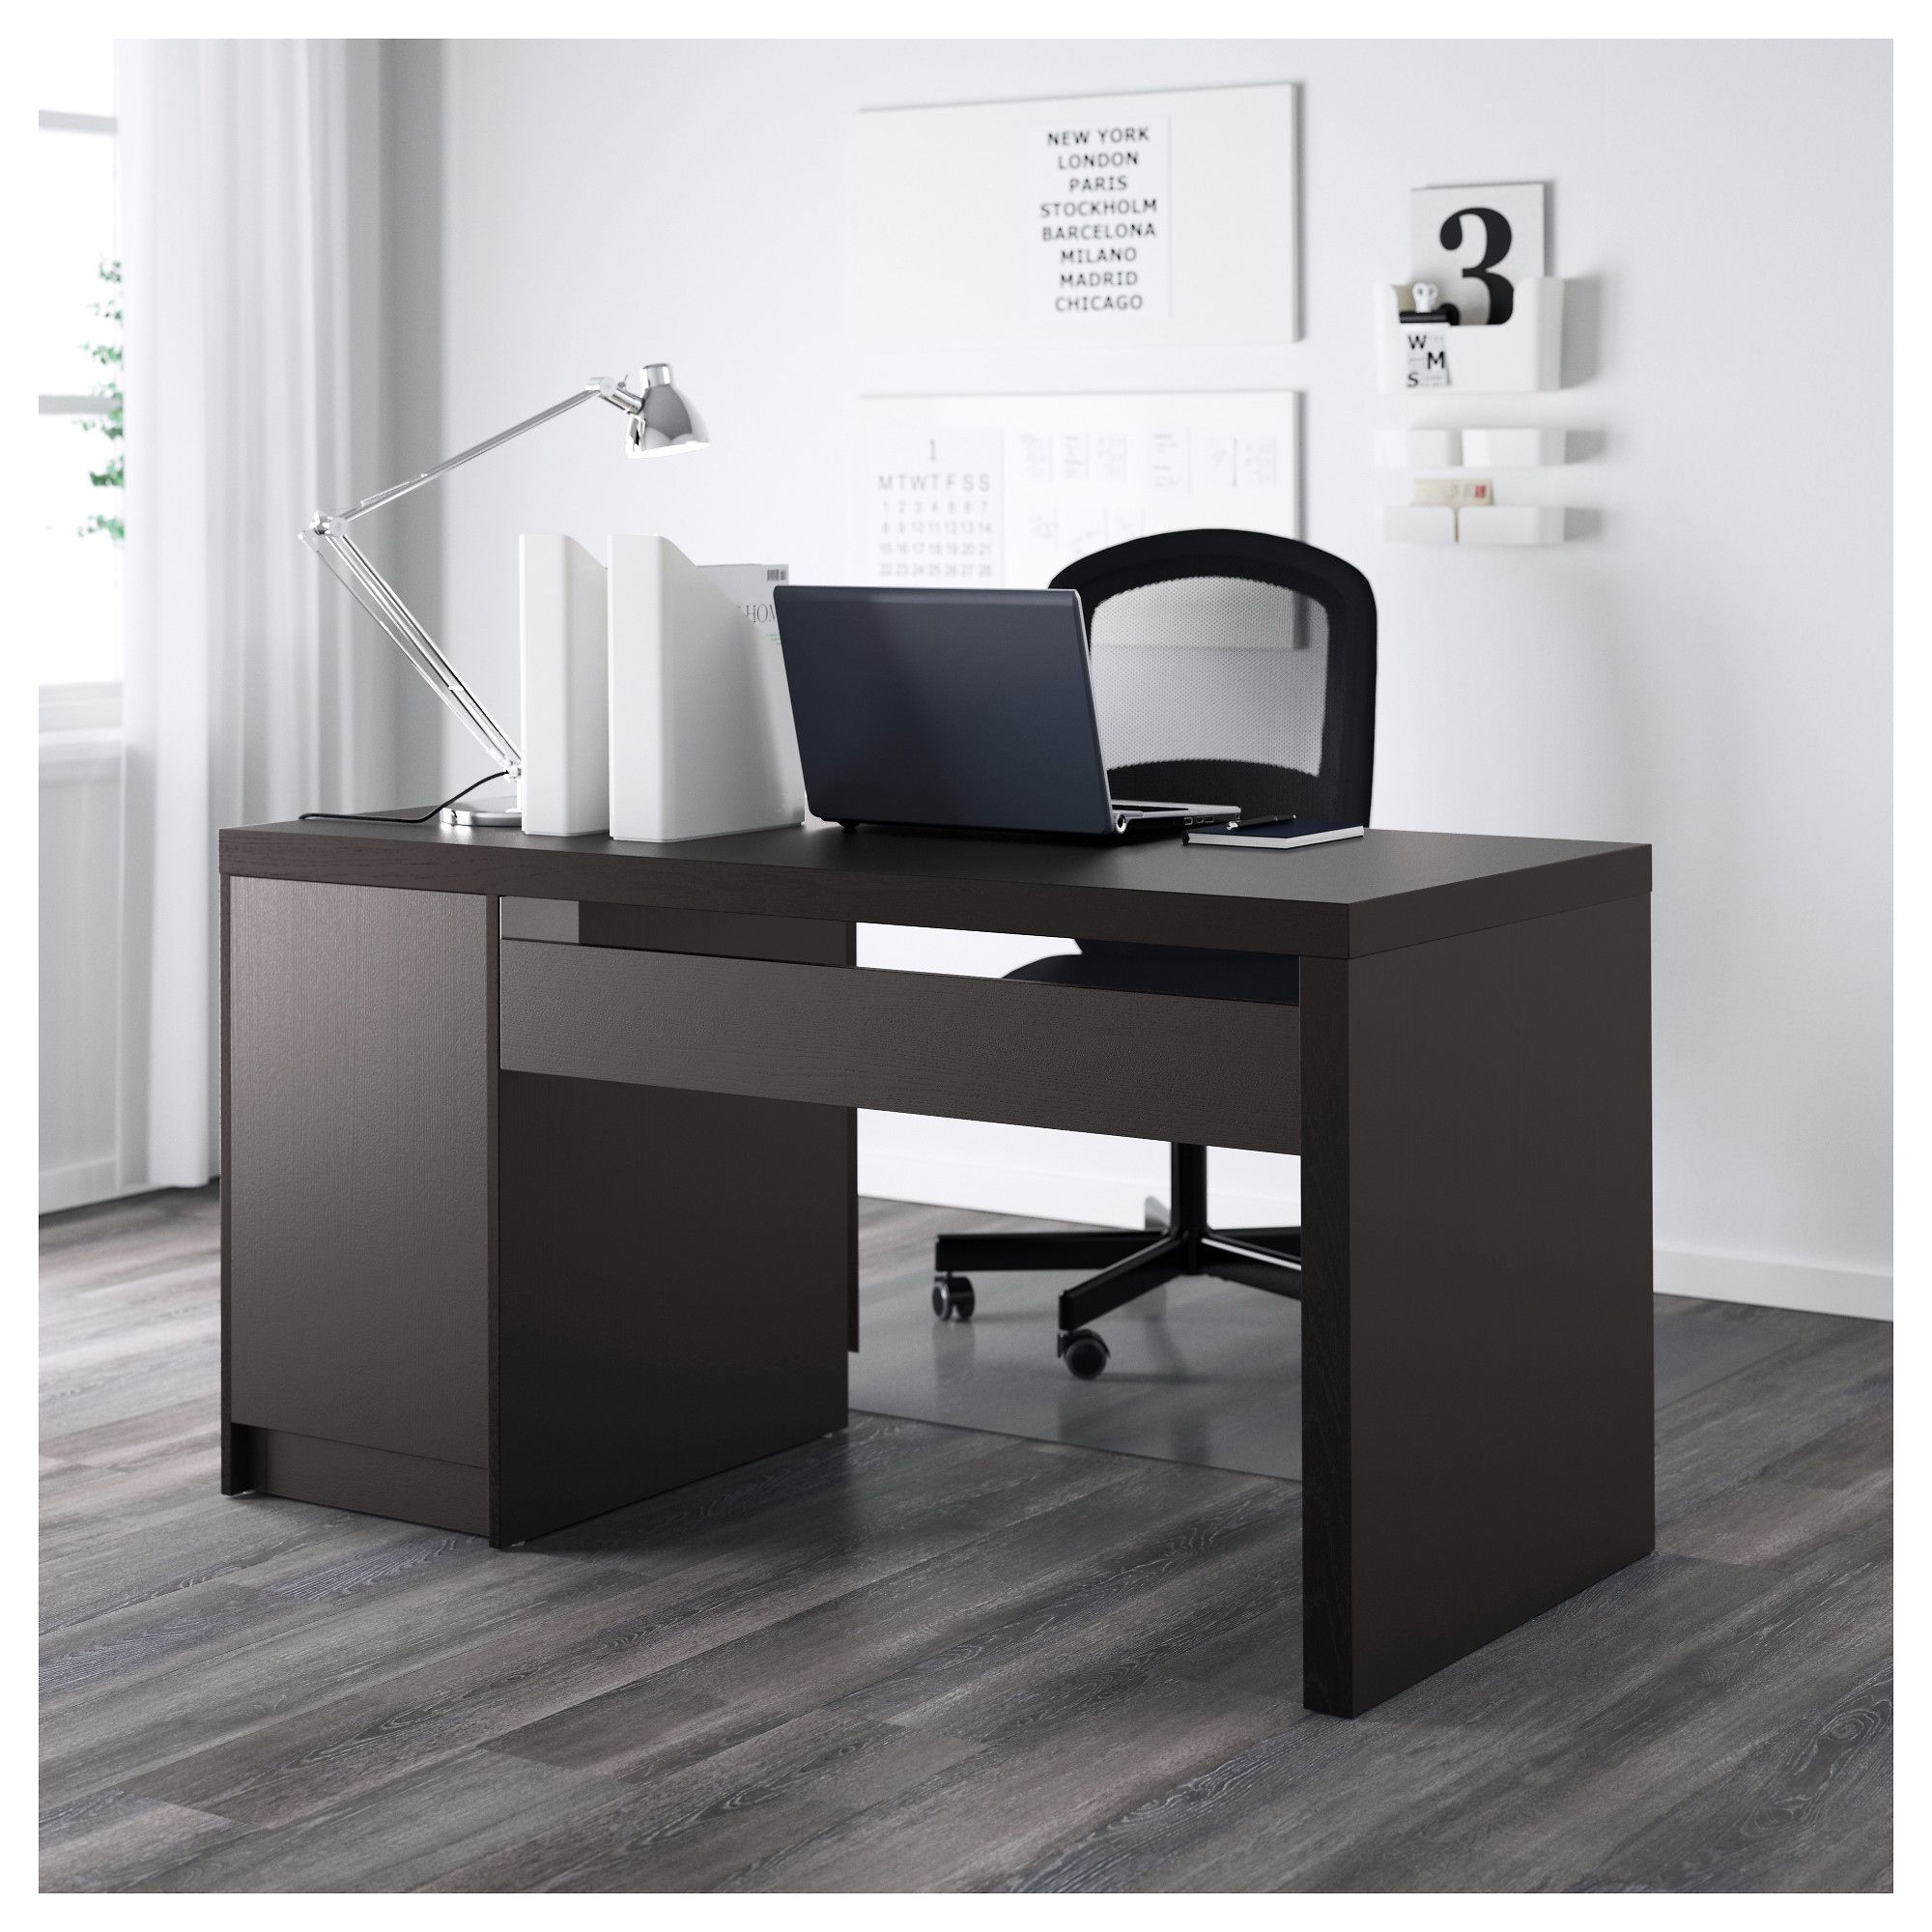 99 Malm Desk Black brown Custom Home